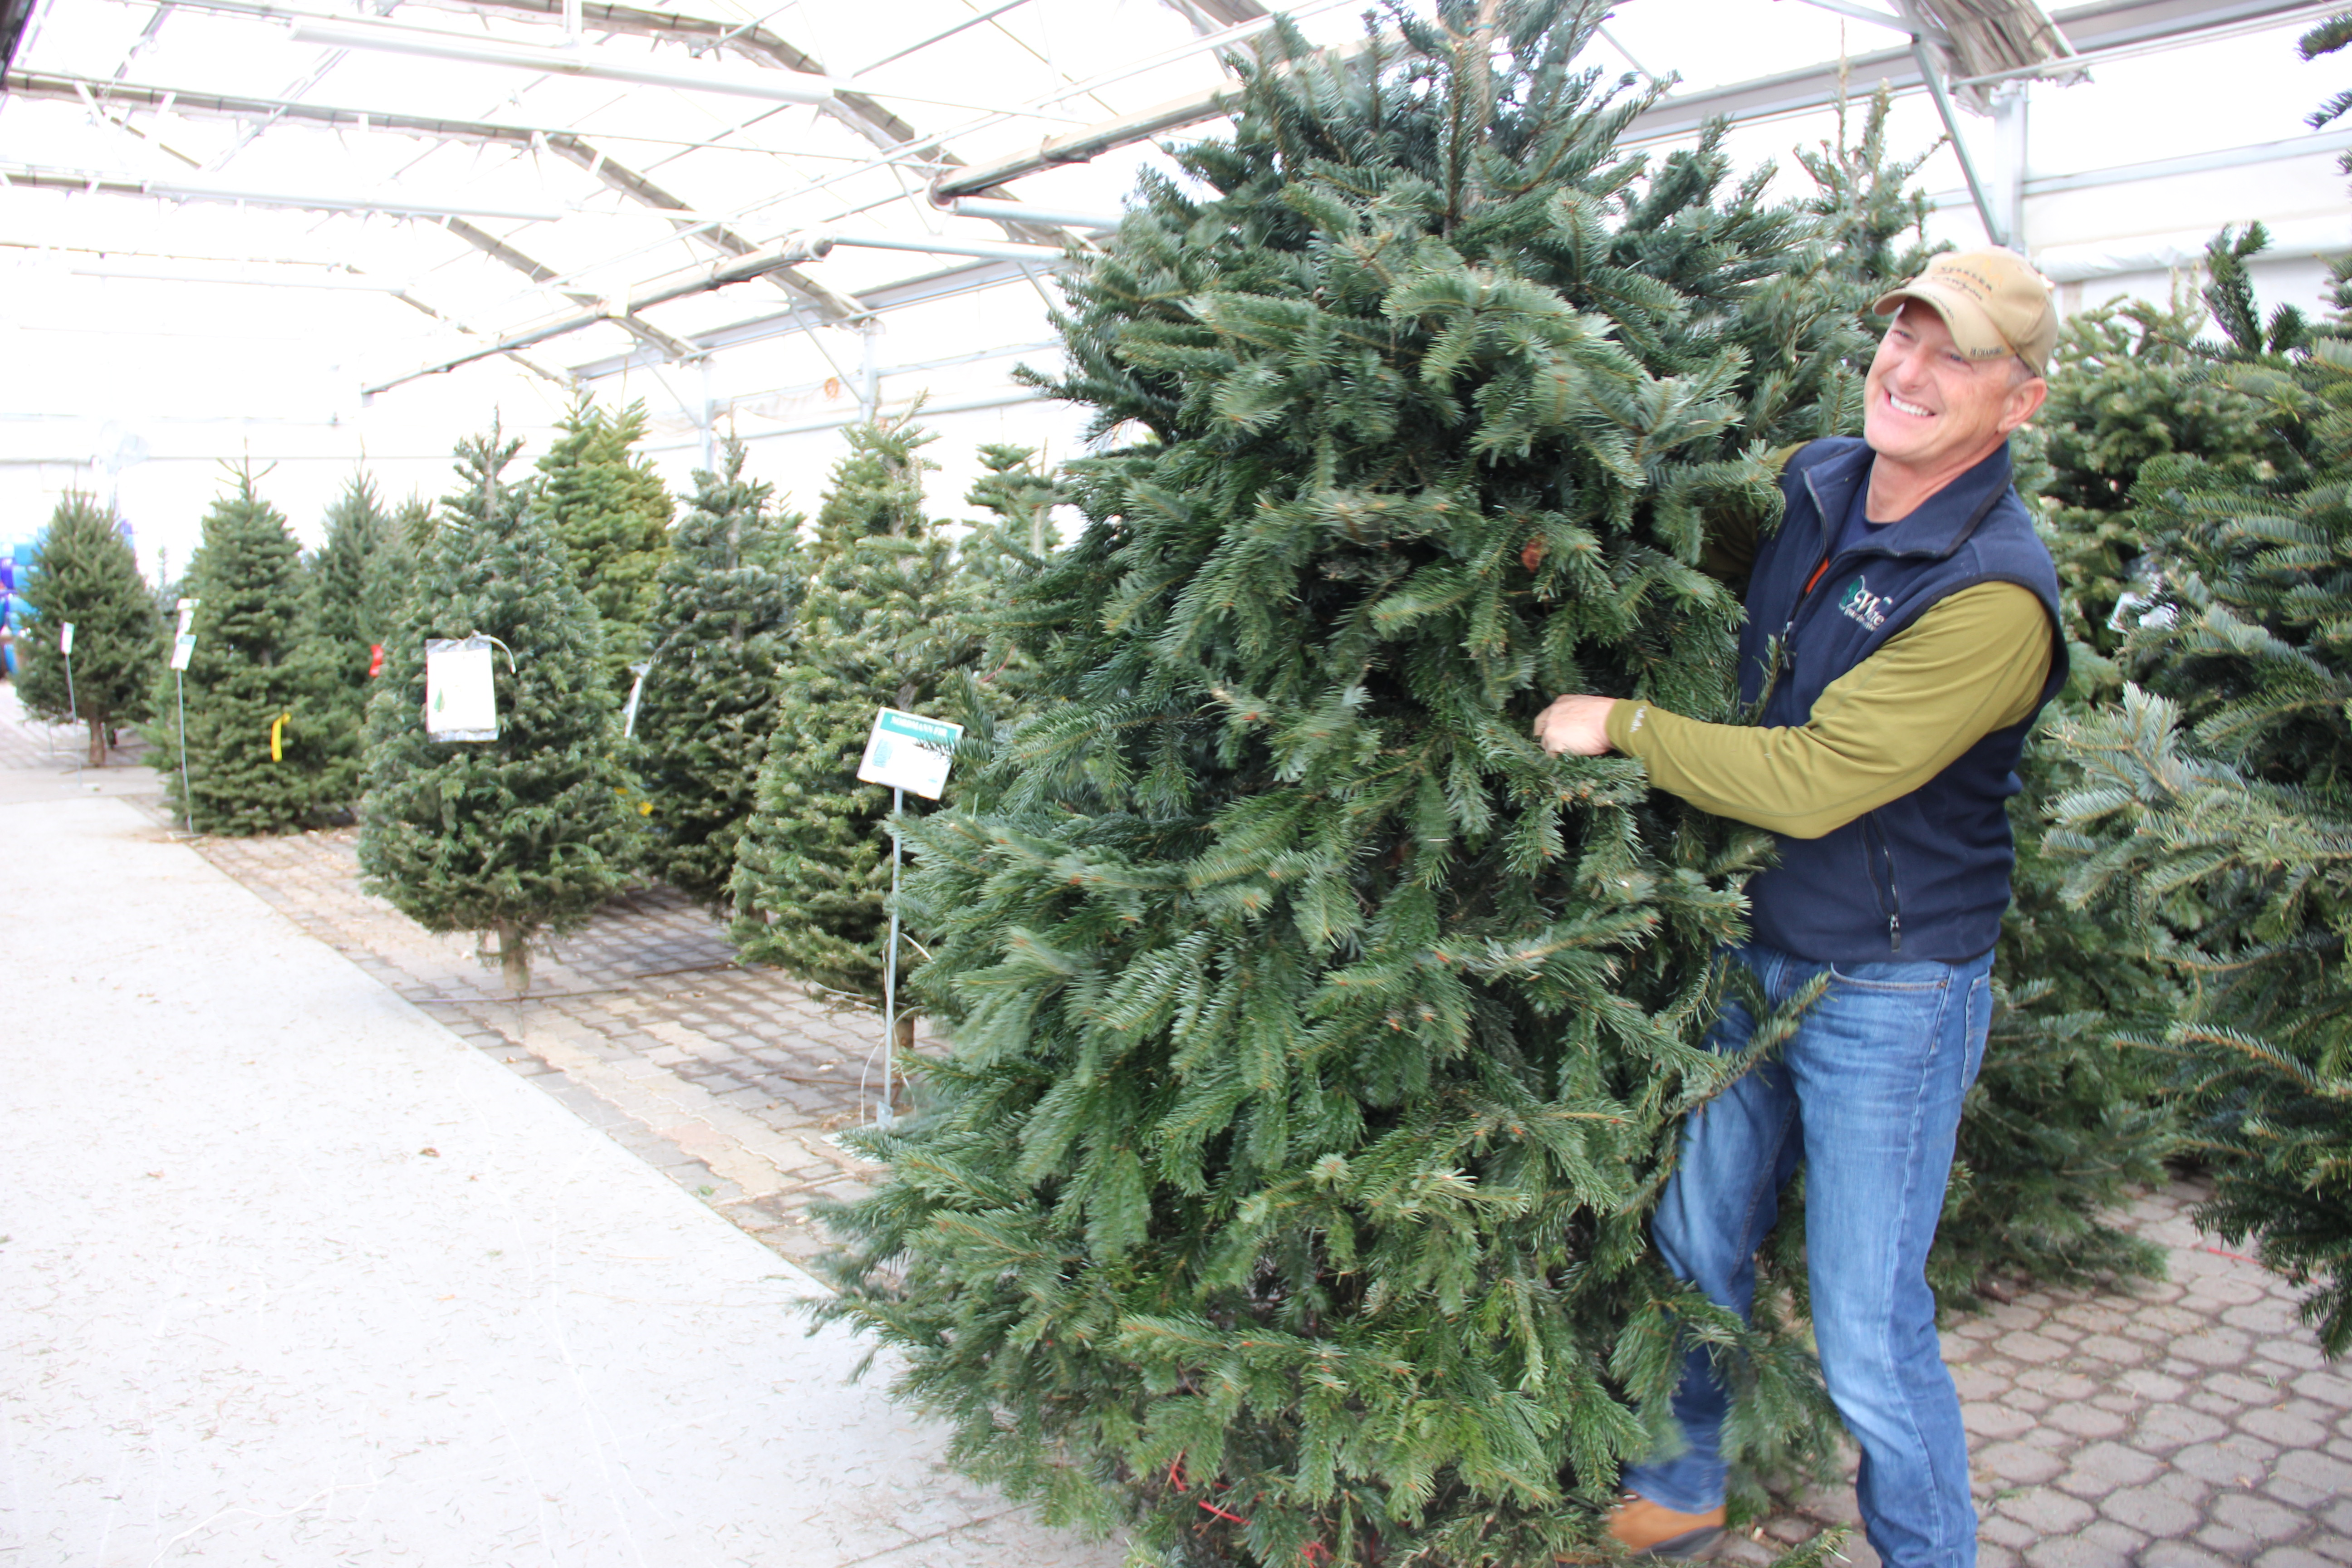 Christmas tree shortage increases prices, limits selection, quality